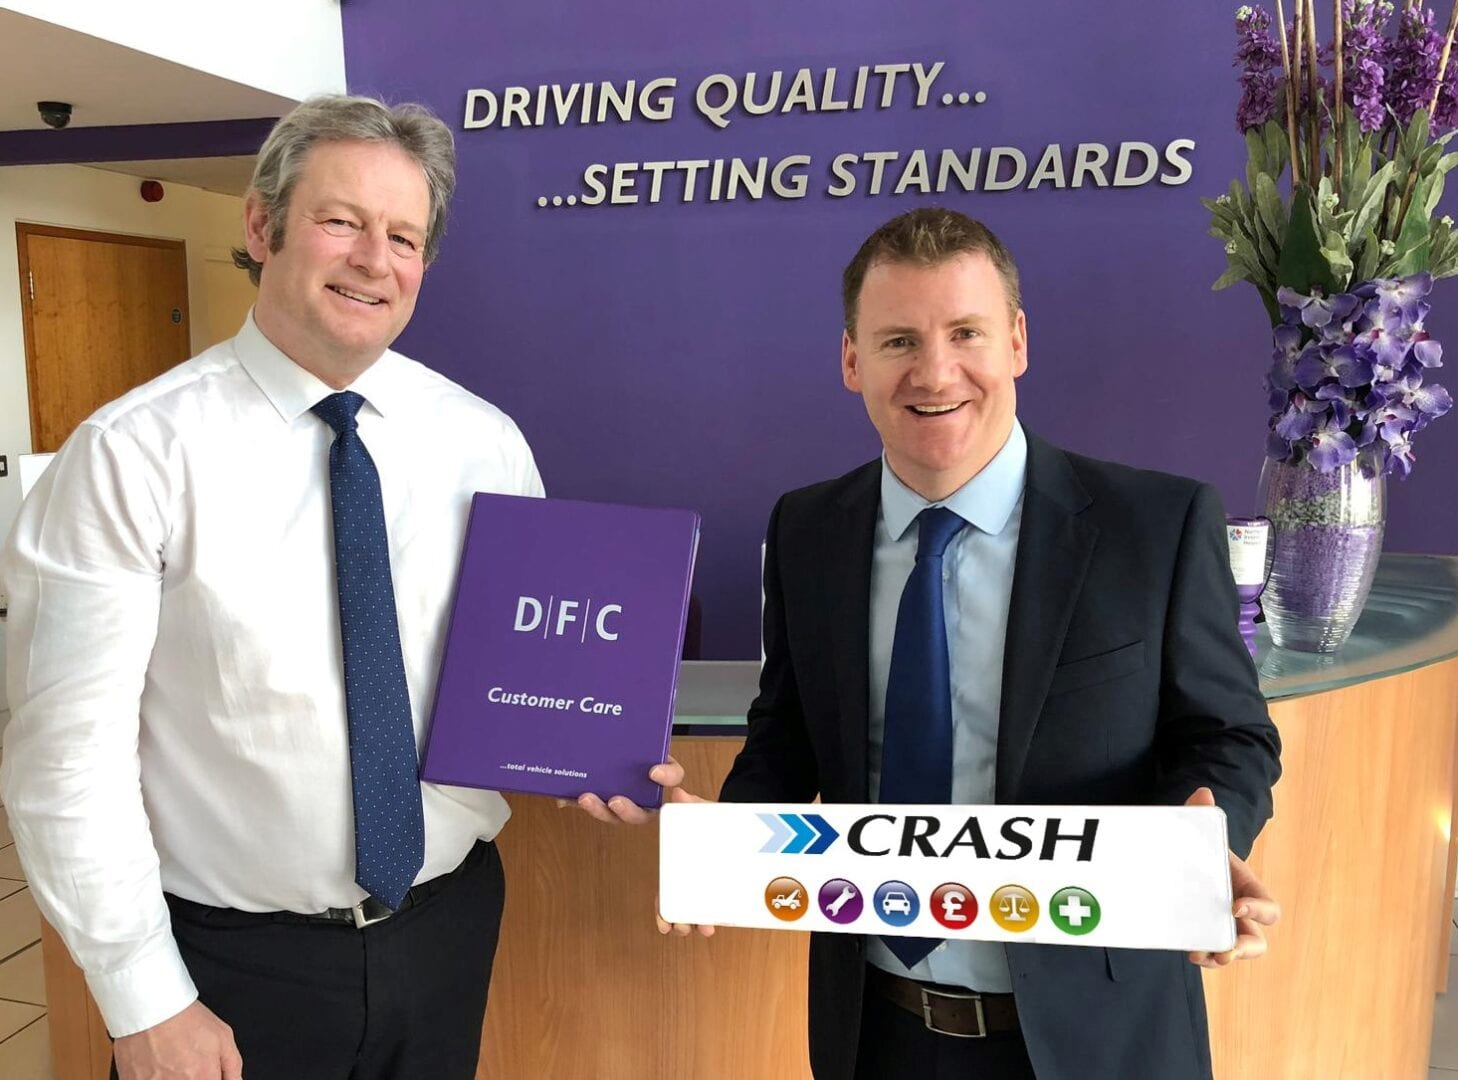 DFC and CRASH Services team up for accident management support